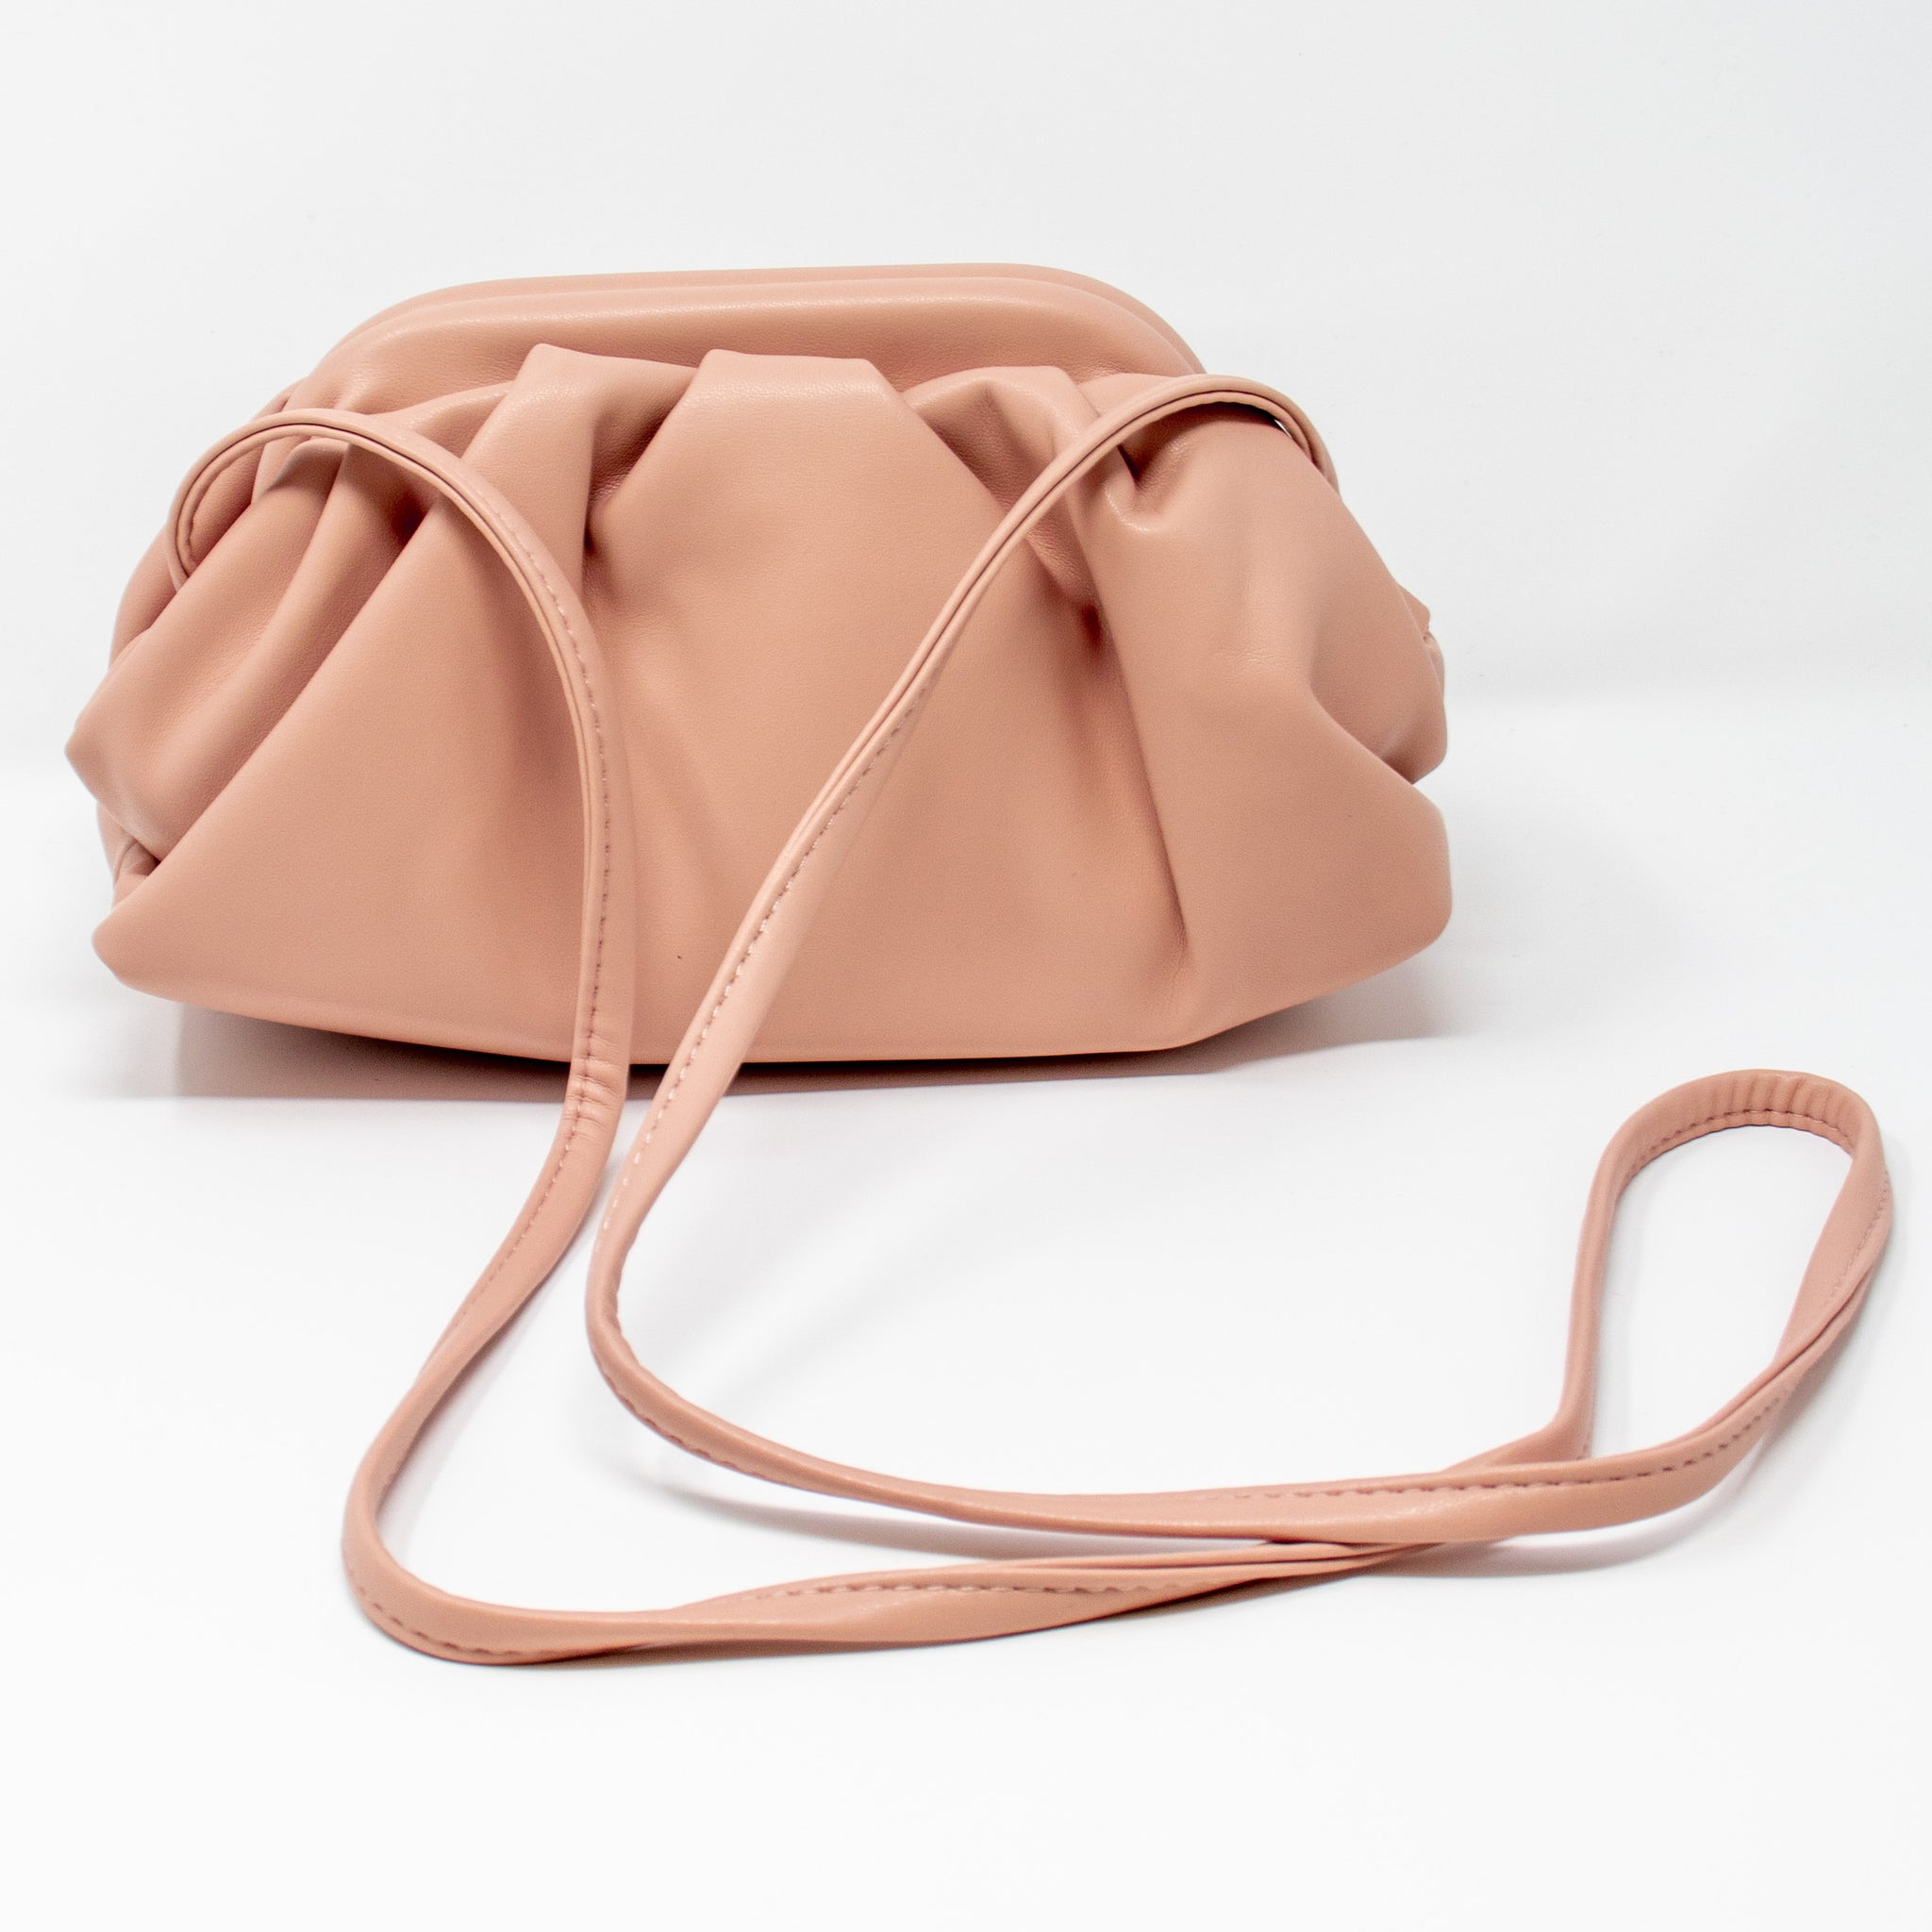 Blush Vegan Leather Clutch